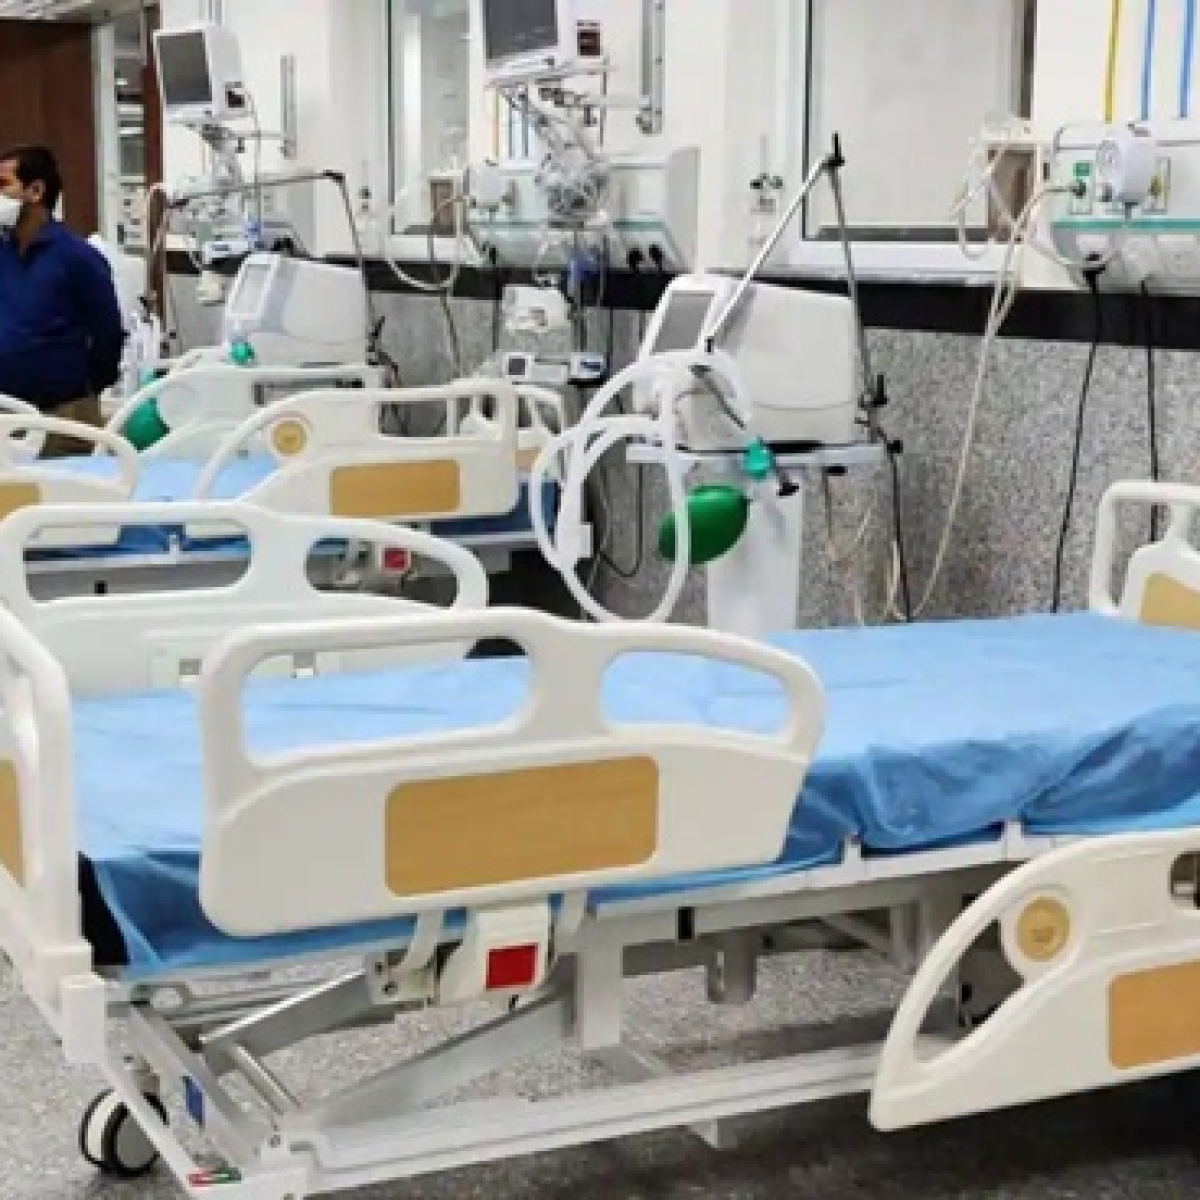 Maharashtra COVID-19 spike: Private hospitals in Pune asked to reserve over 2,000 beds